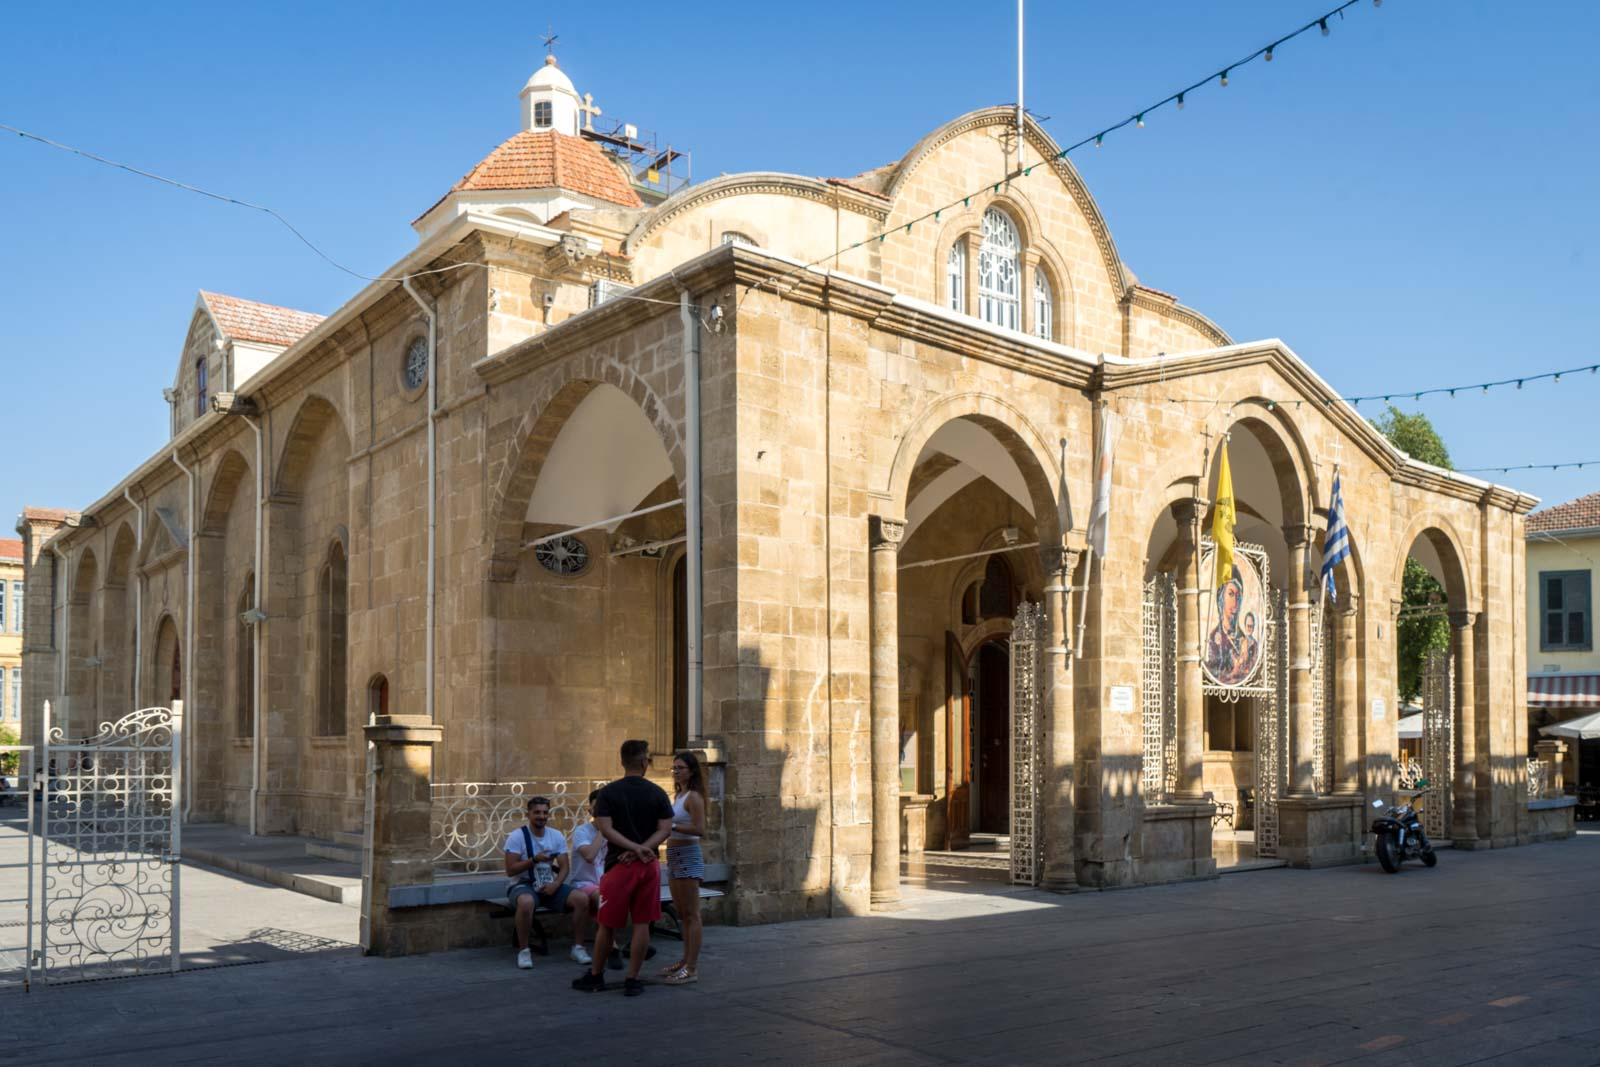 Old City, Nicosia, Cyprus